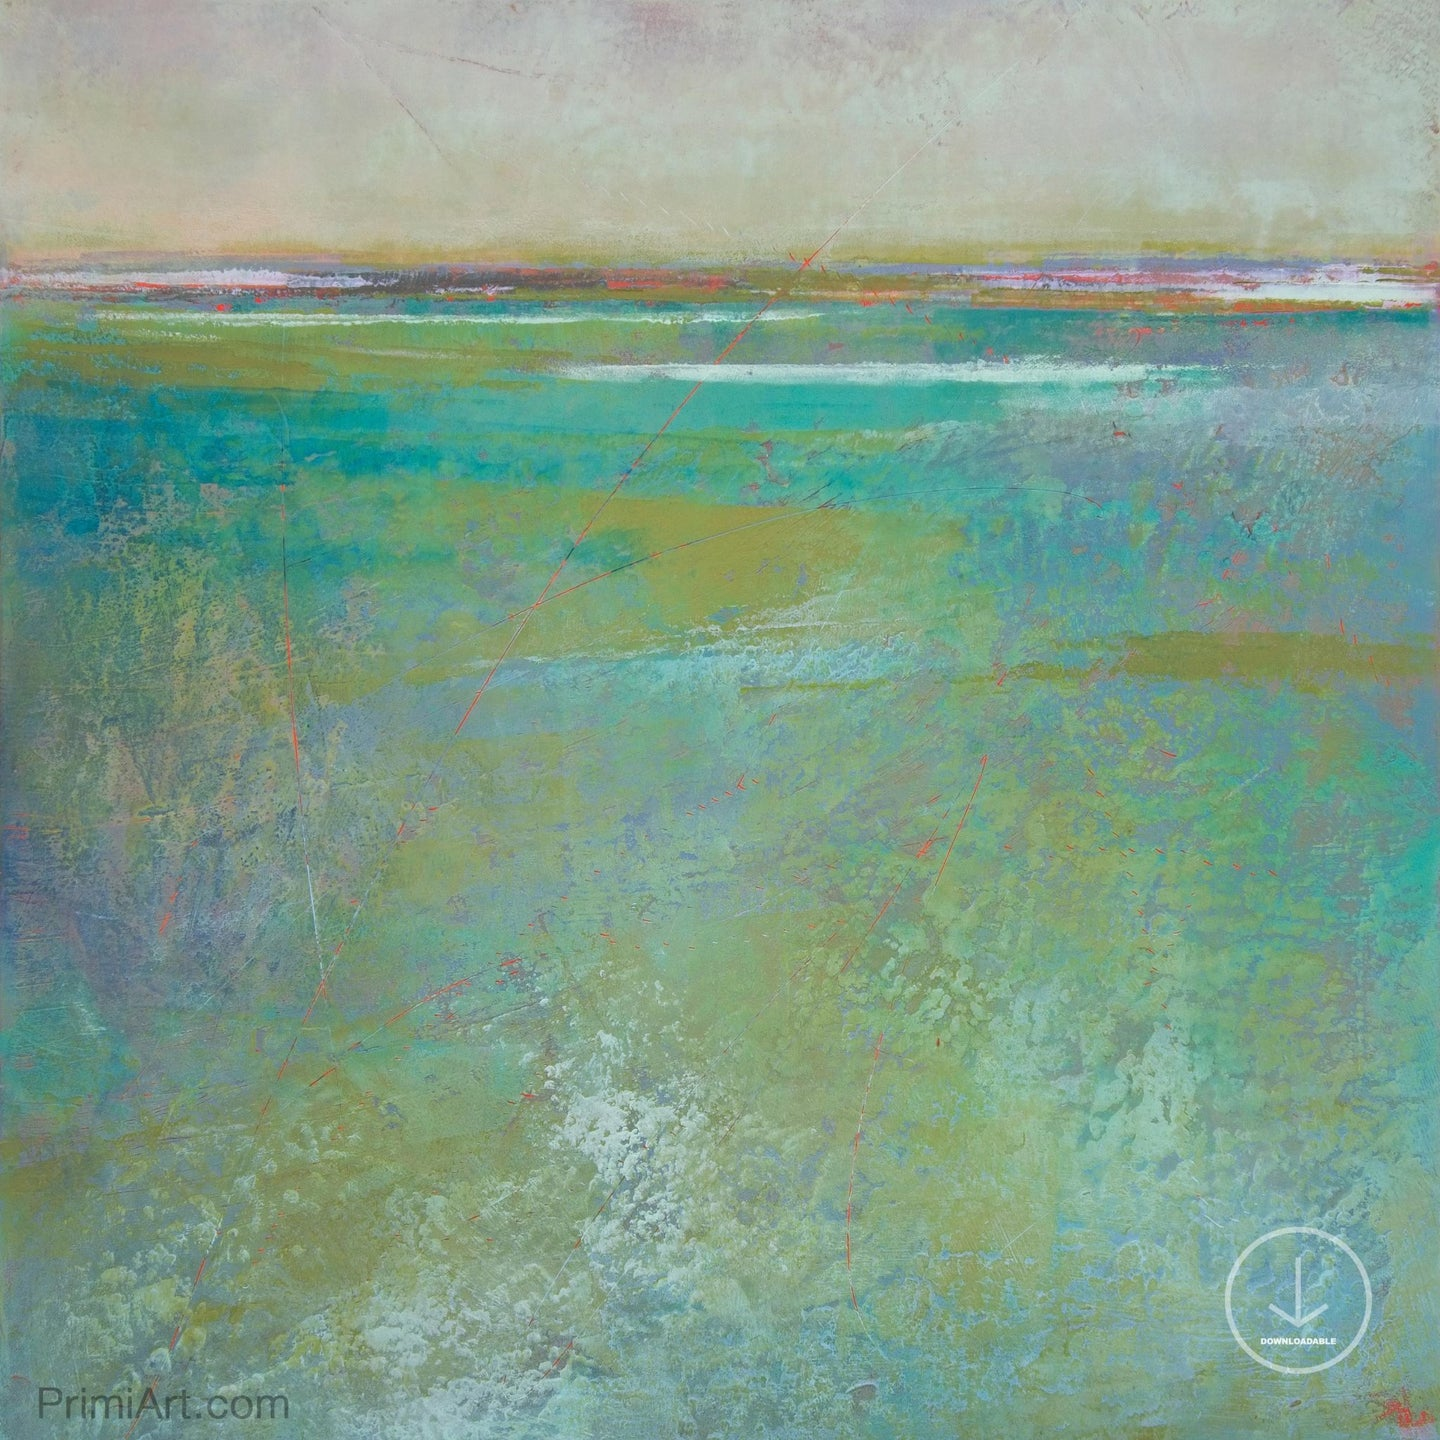 Teal green abstract beach painting